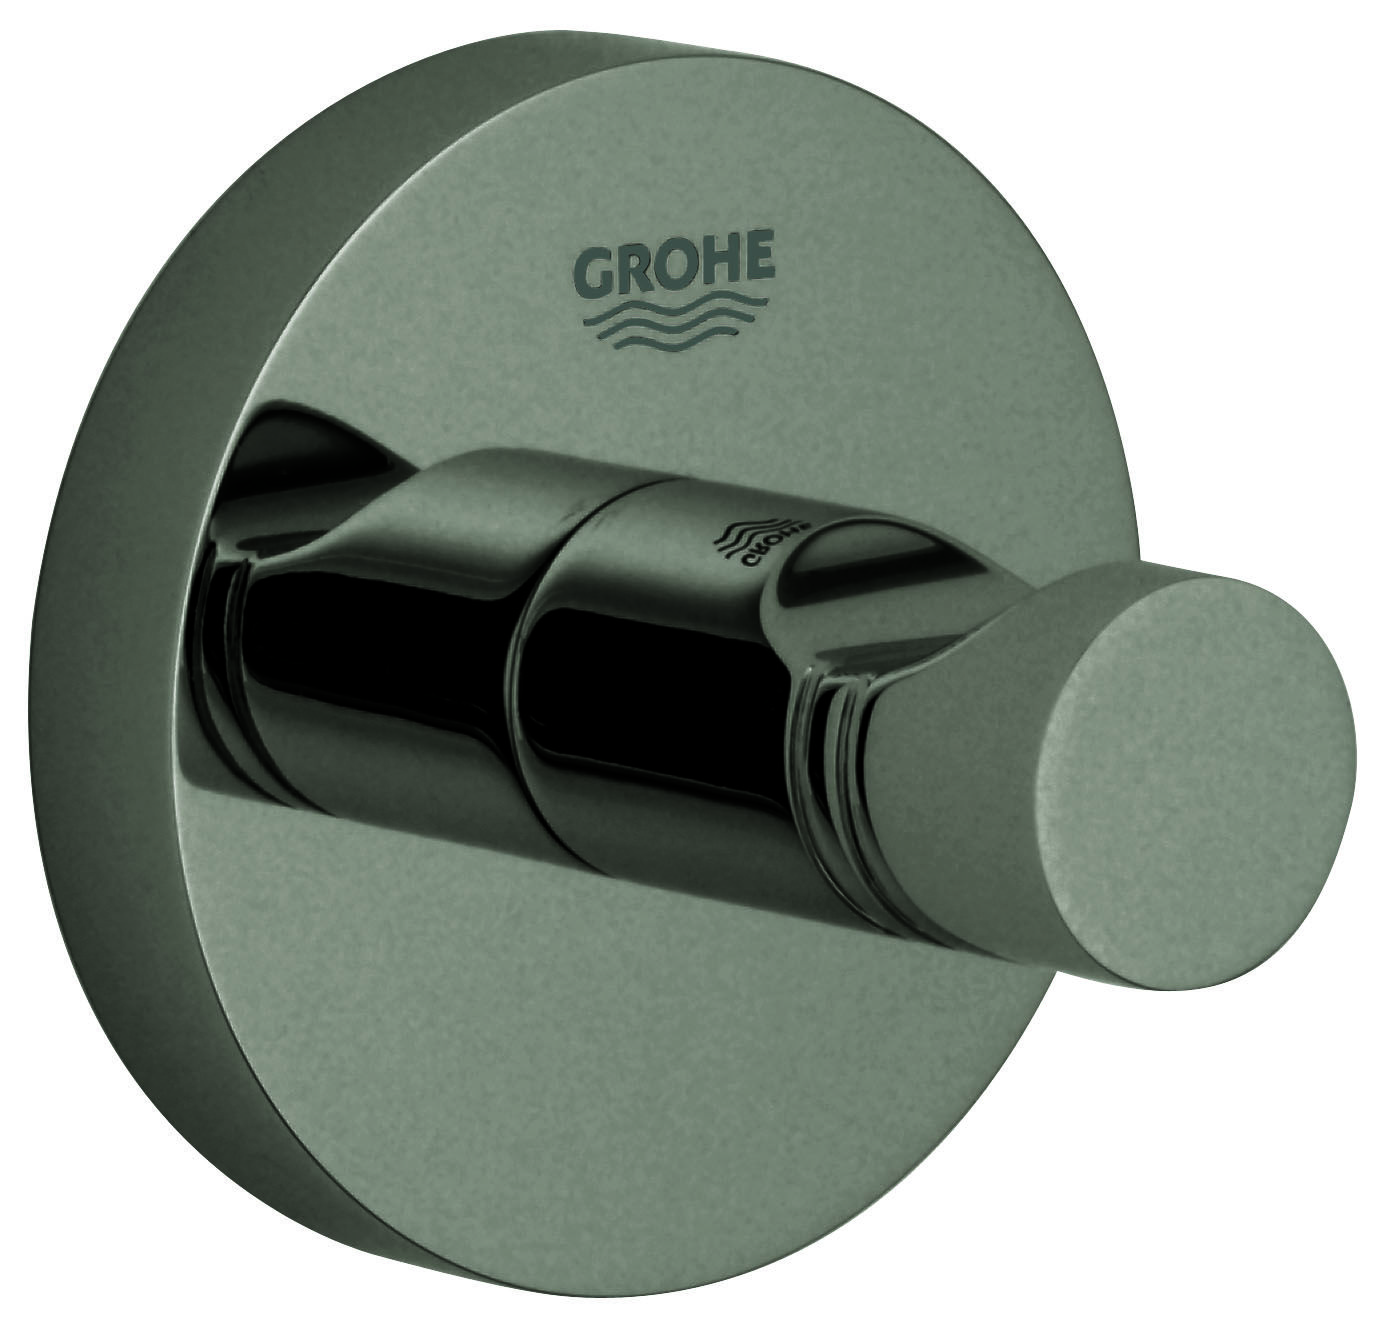 Badezimmer Accessoires Grohe Pin Von Grohe Auf Grohe Colors Shapes Pinterest Bathroom